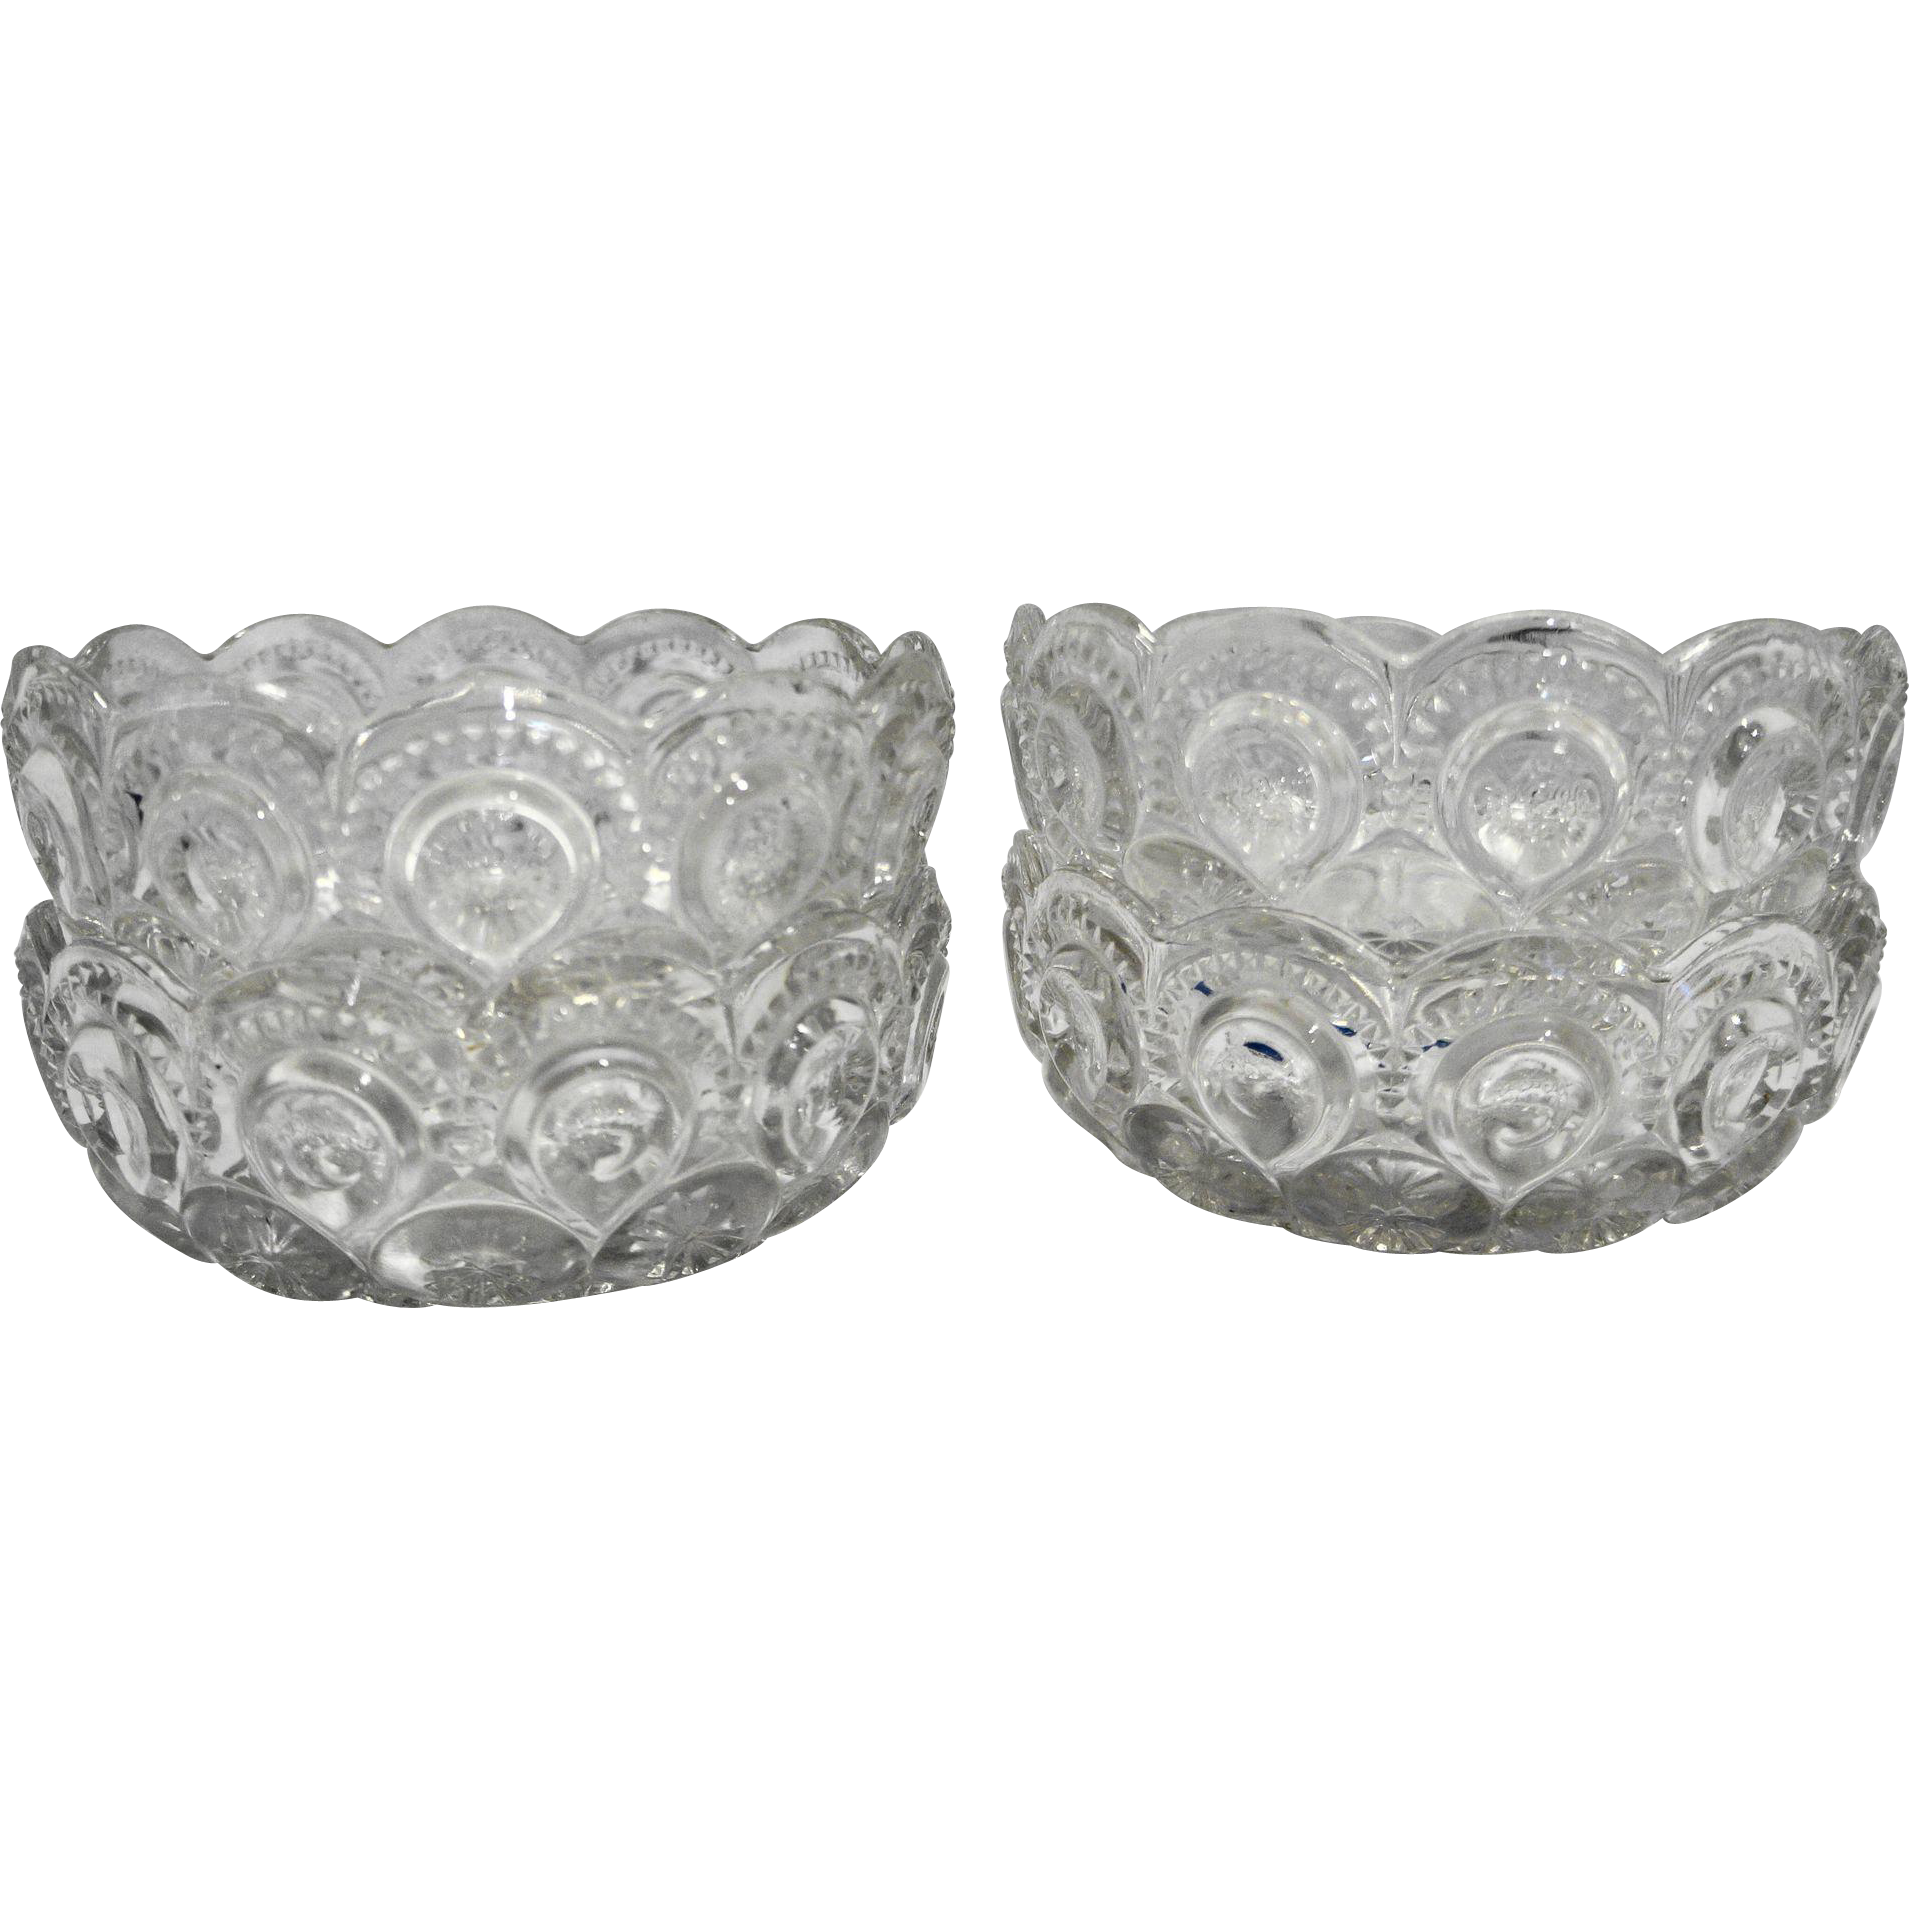 Moon Stars Clear Nappy Small Bowls Set of 4 LE Smith